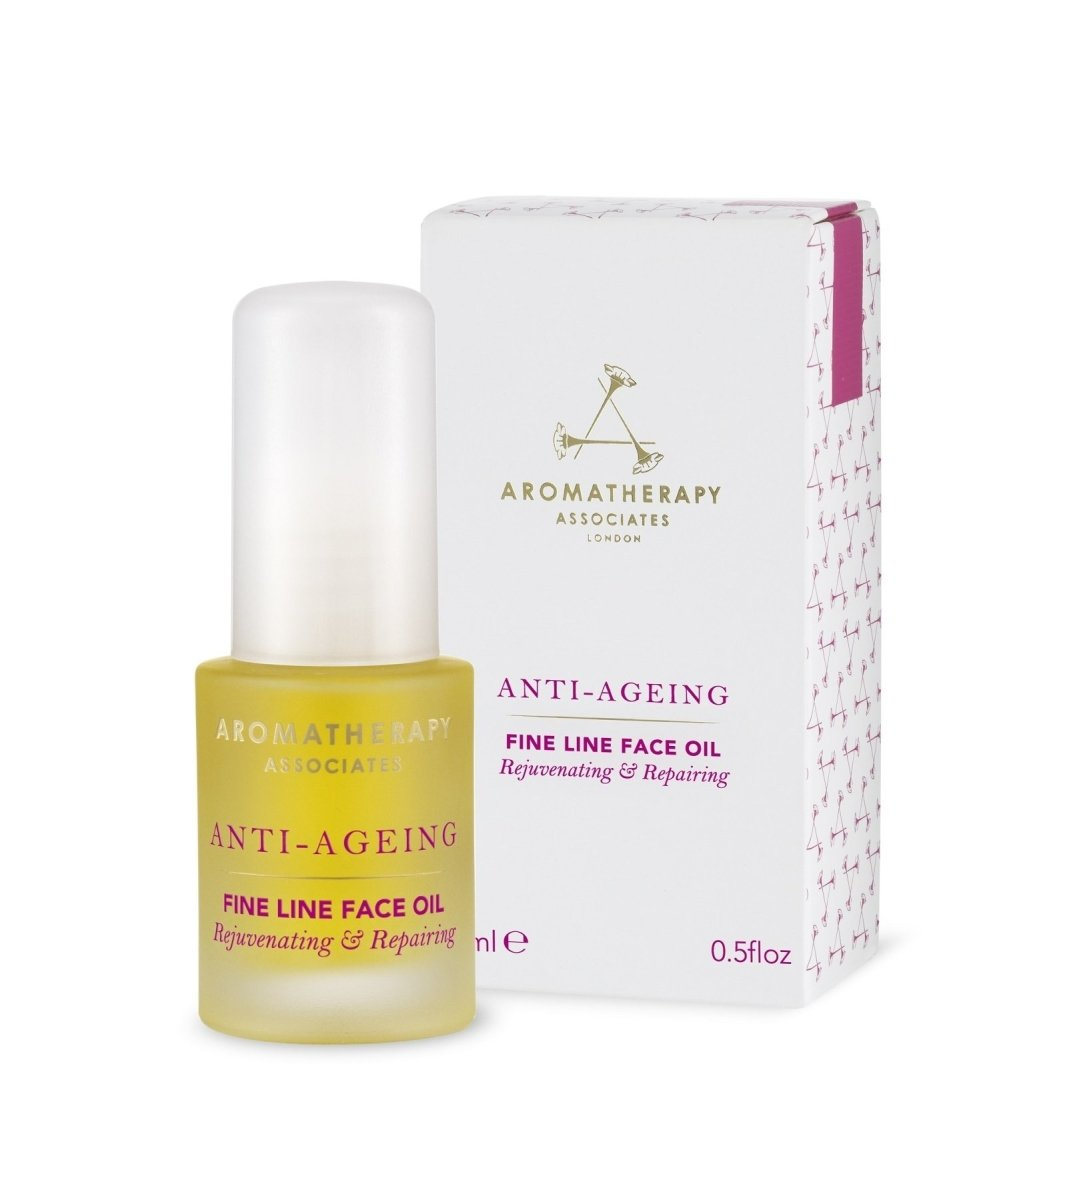 AROMATHERAPY ASSOCIATES Anti-Ageing Fine Line Face Oil [15ml] - MINT Organics